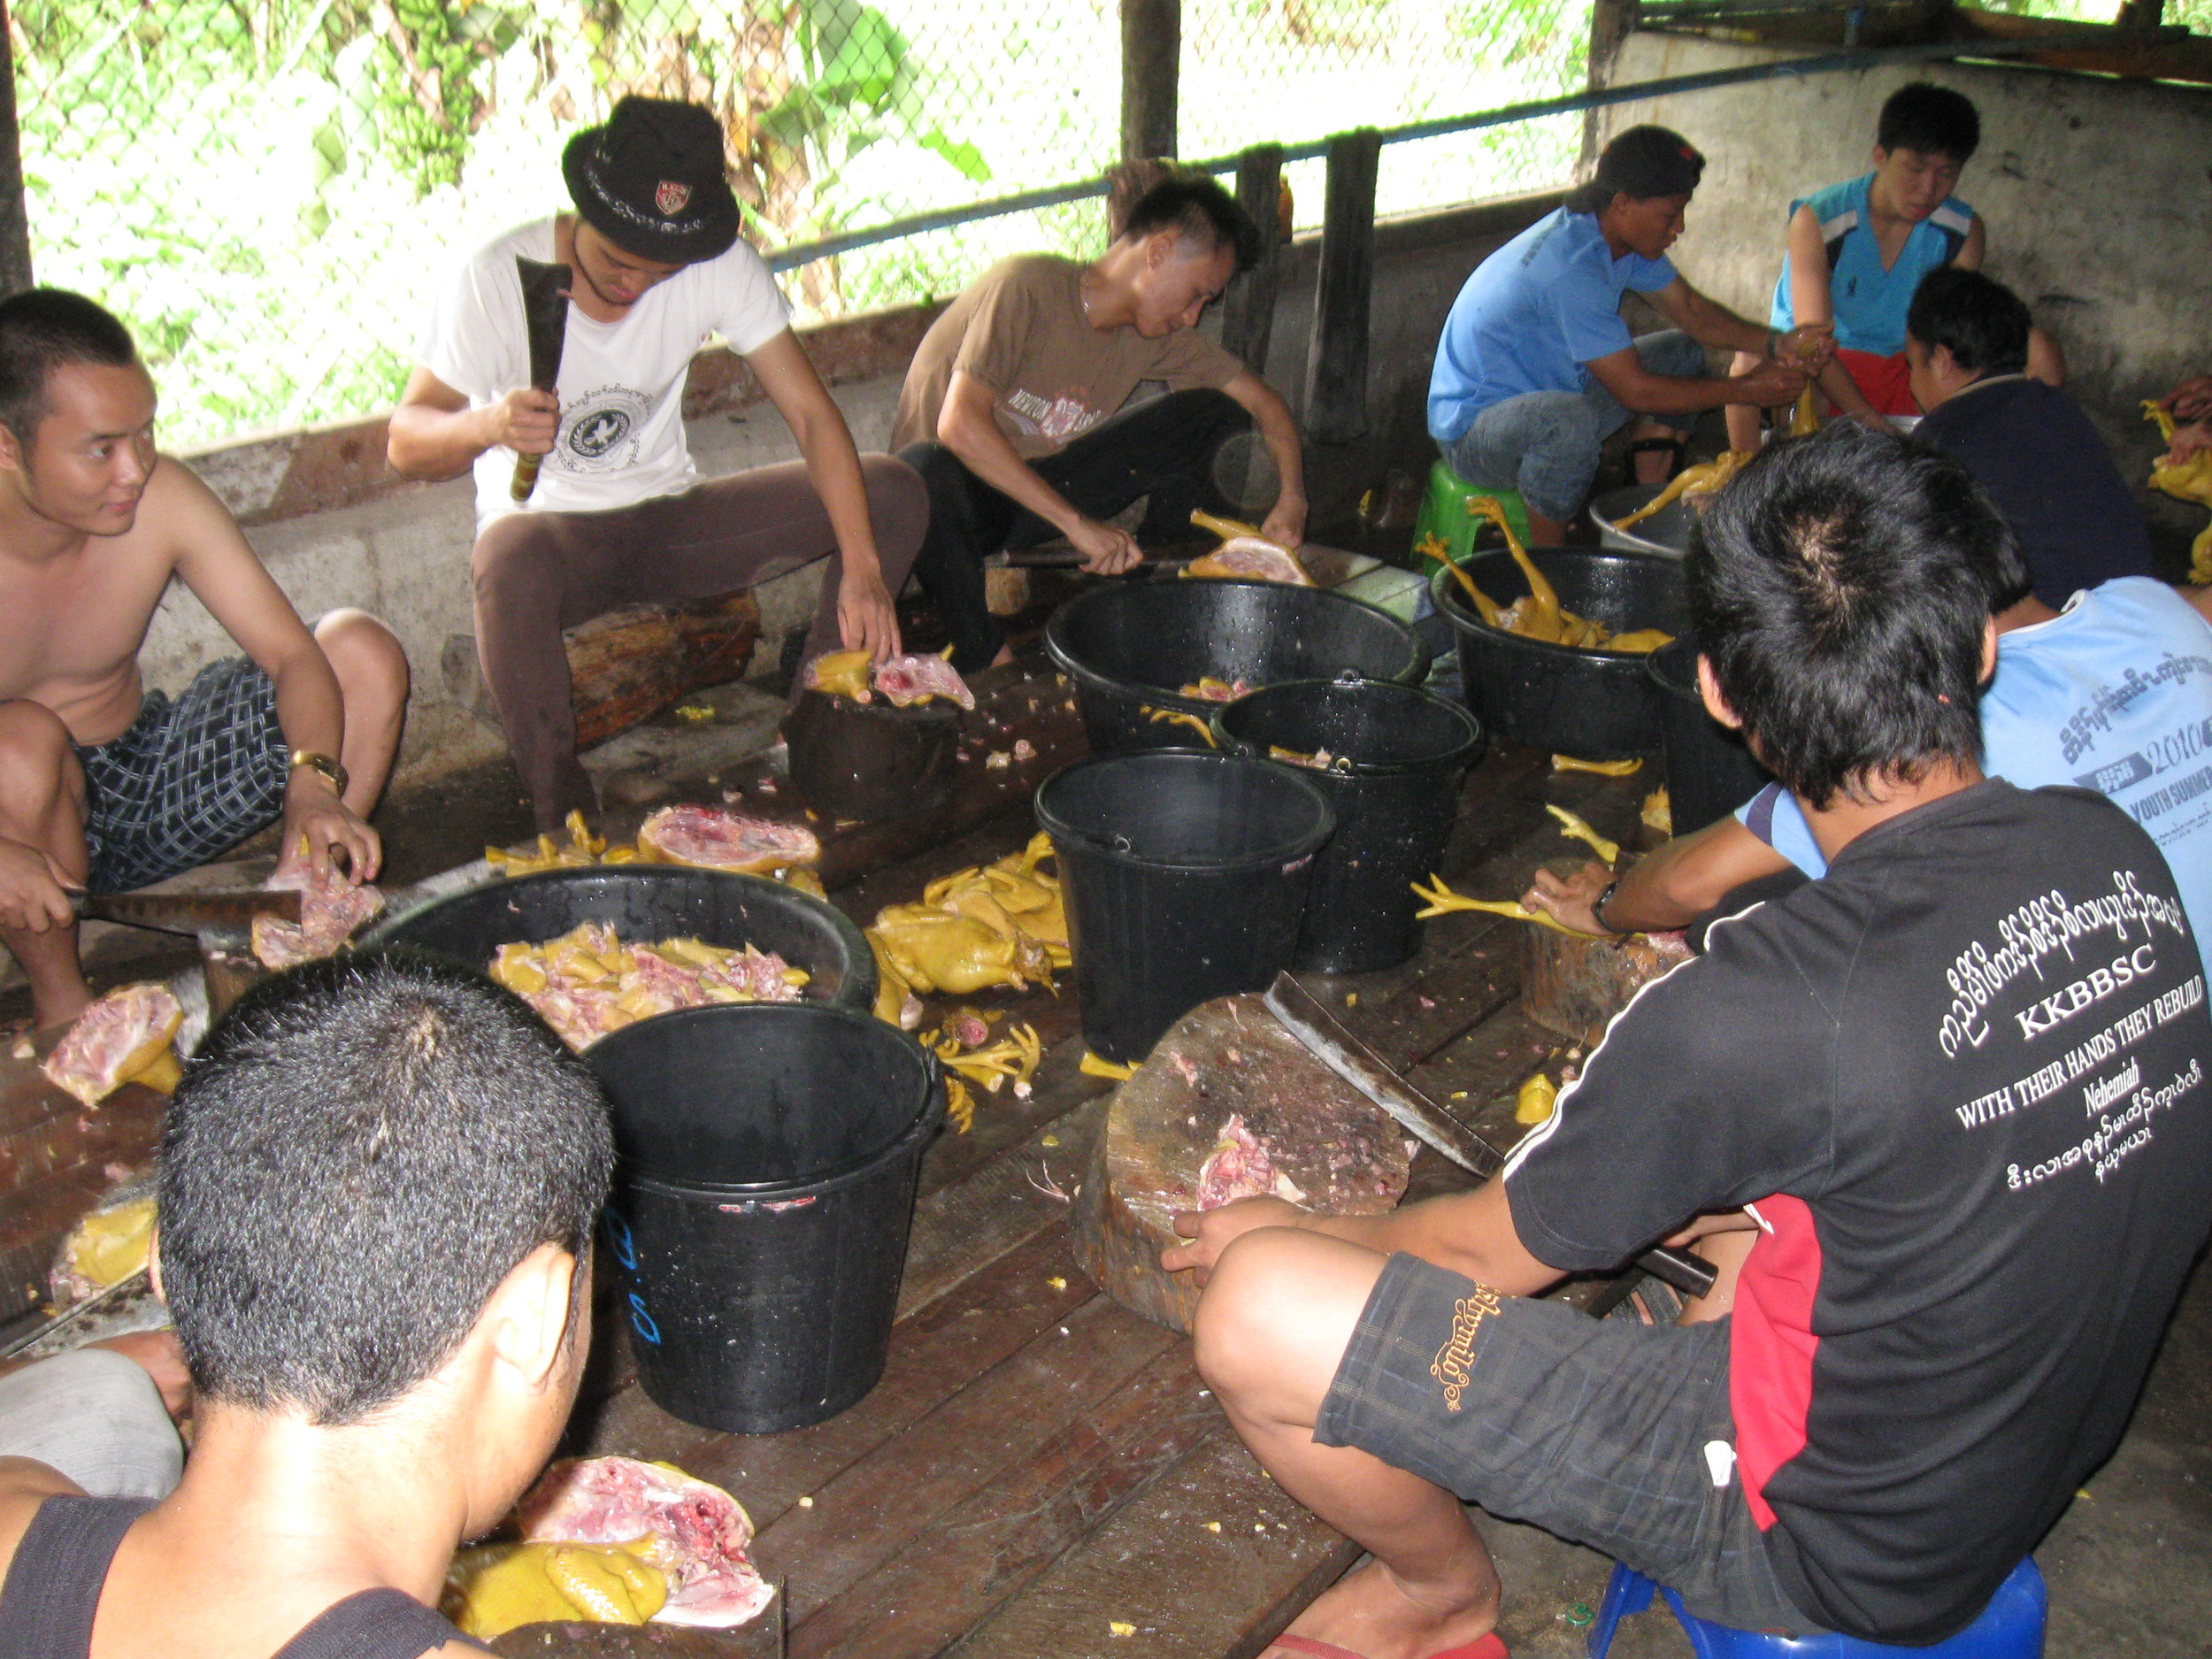 On Day 2, church ministers from other Karen refugee camps arrived for an annual conference. The men are preparing the chicken. The women prepare the vegetables.